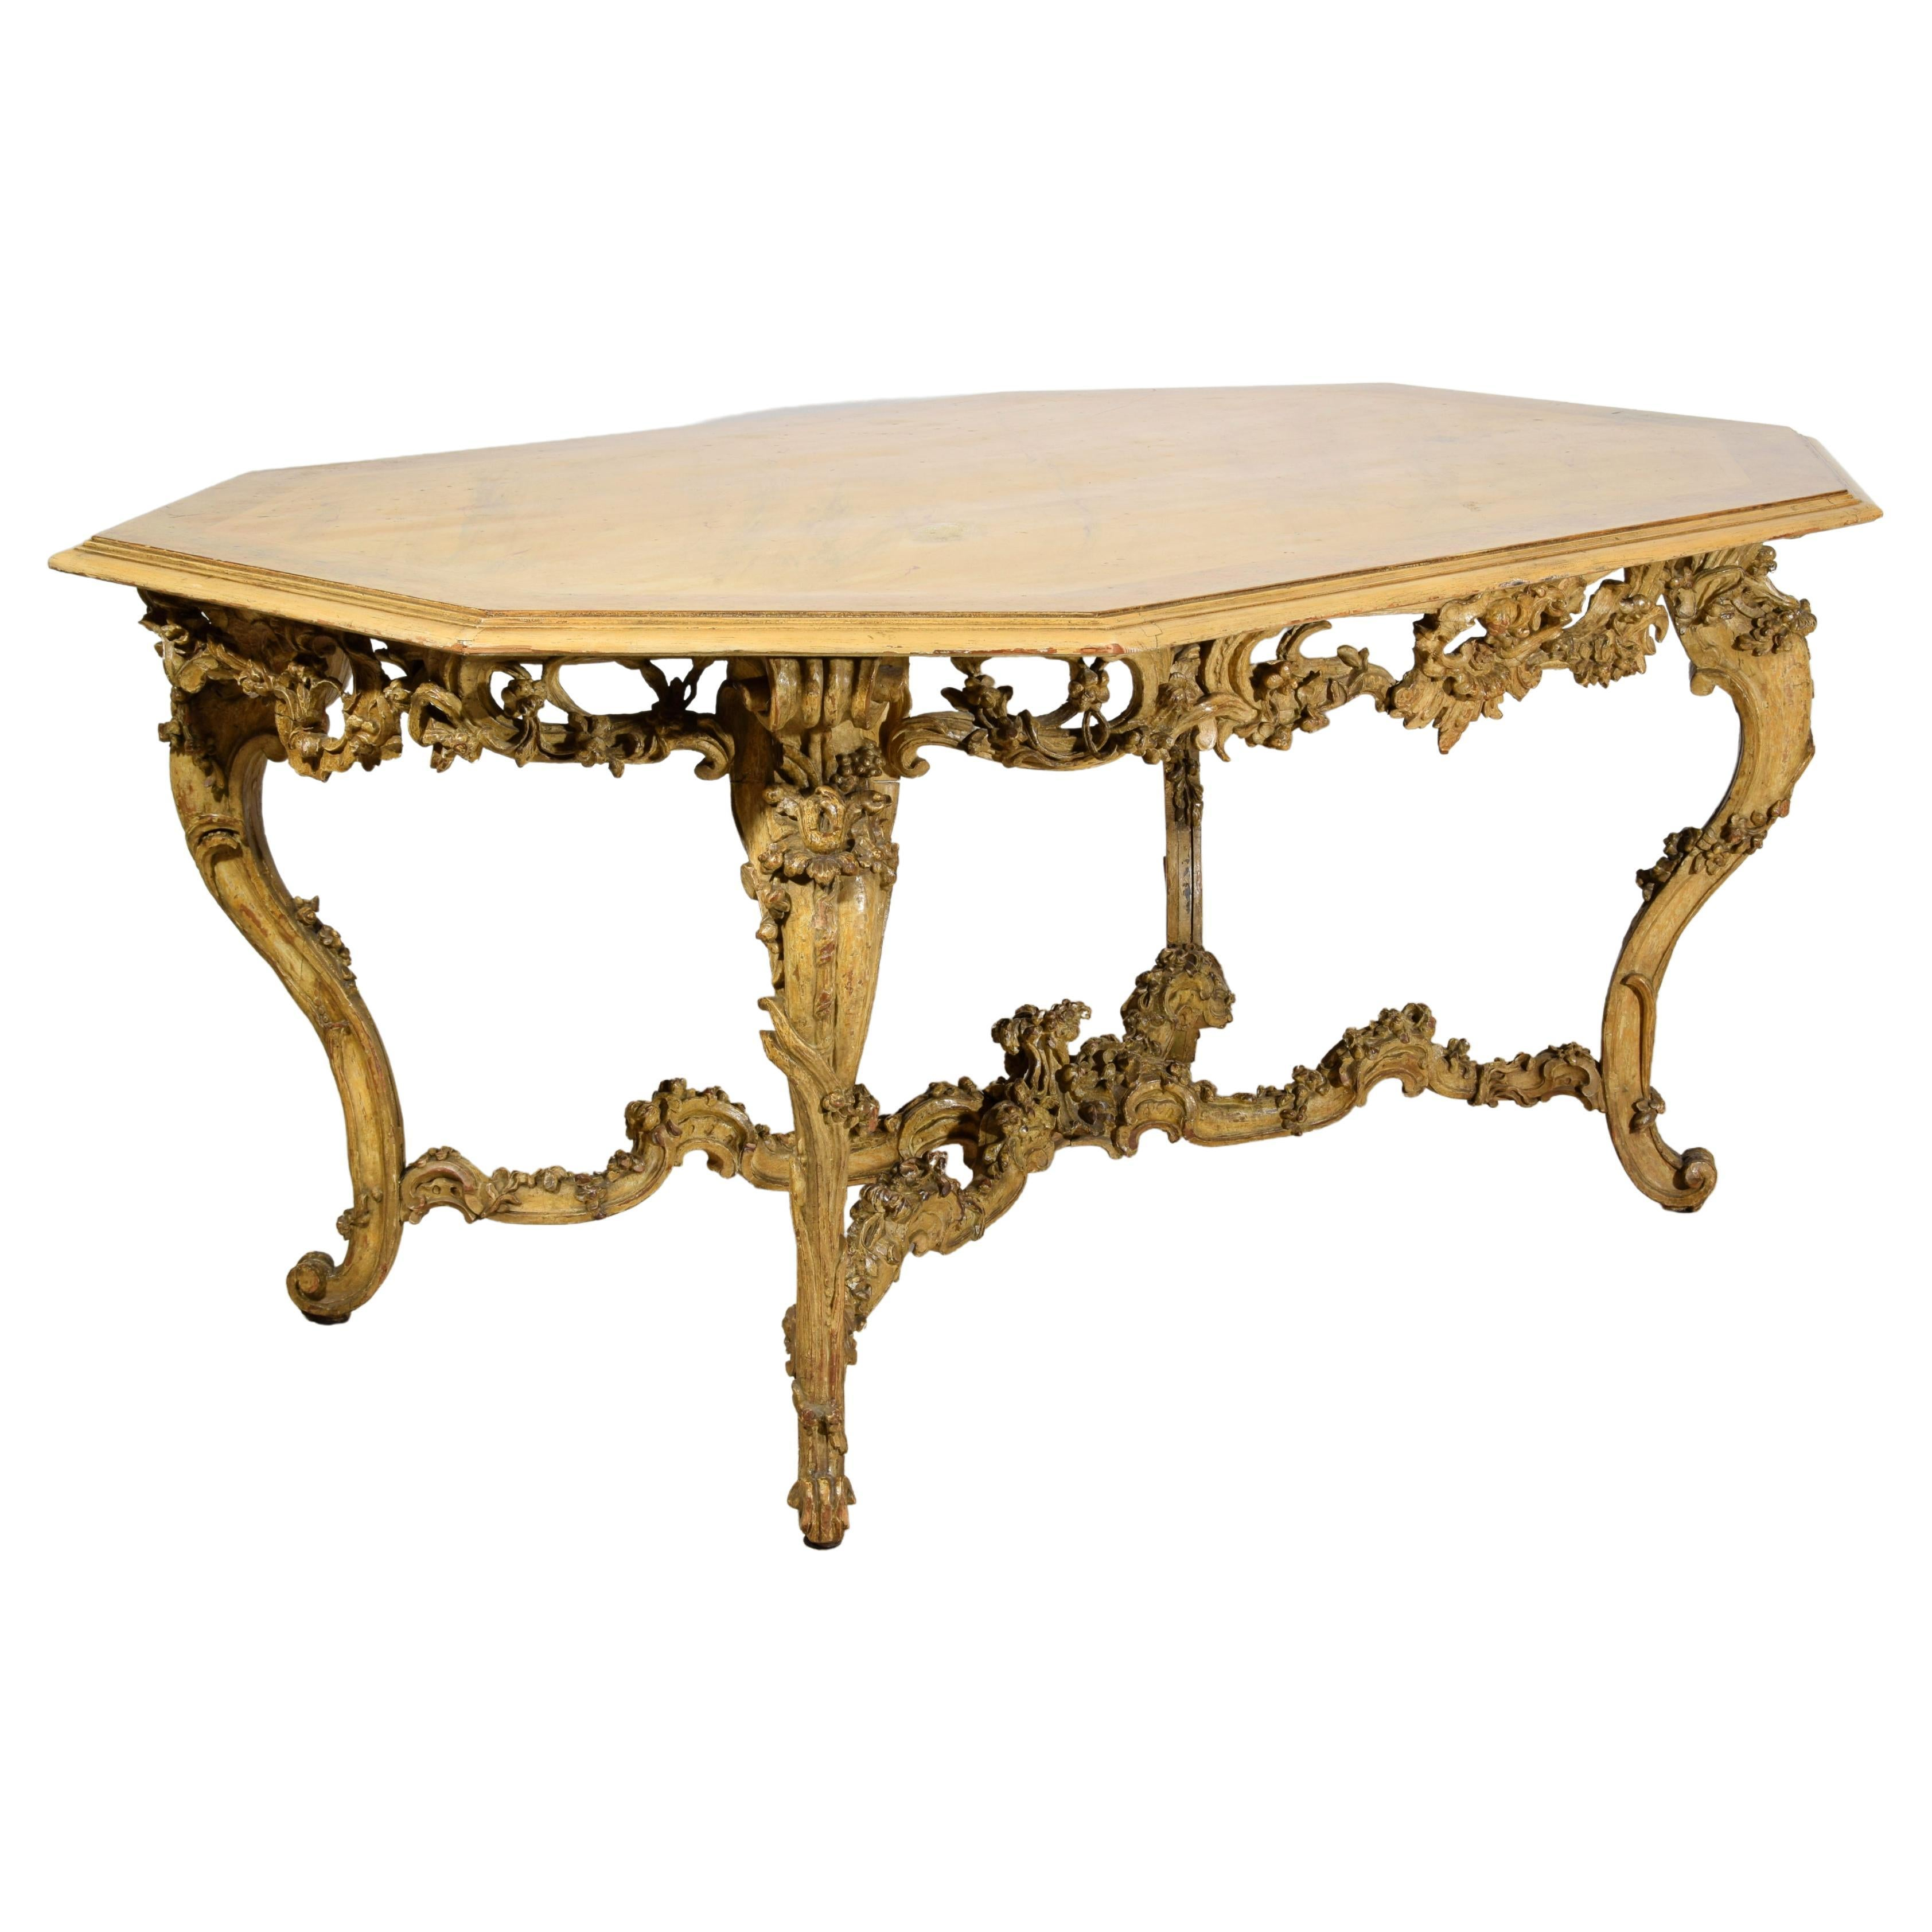 Italian Baroque Carved Gilt and Lacquered Wood Center Table, 18th Century